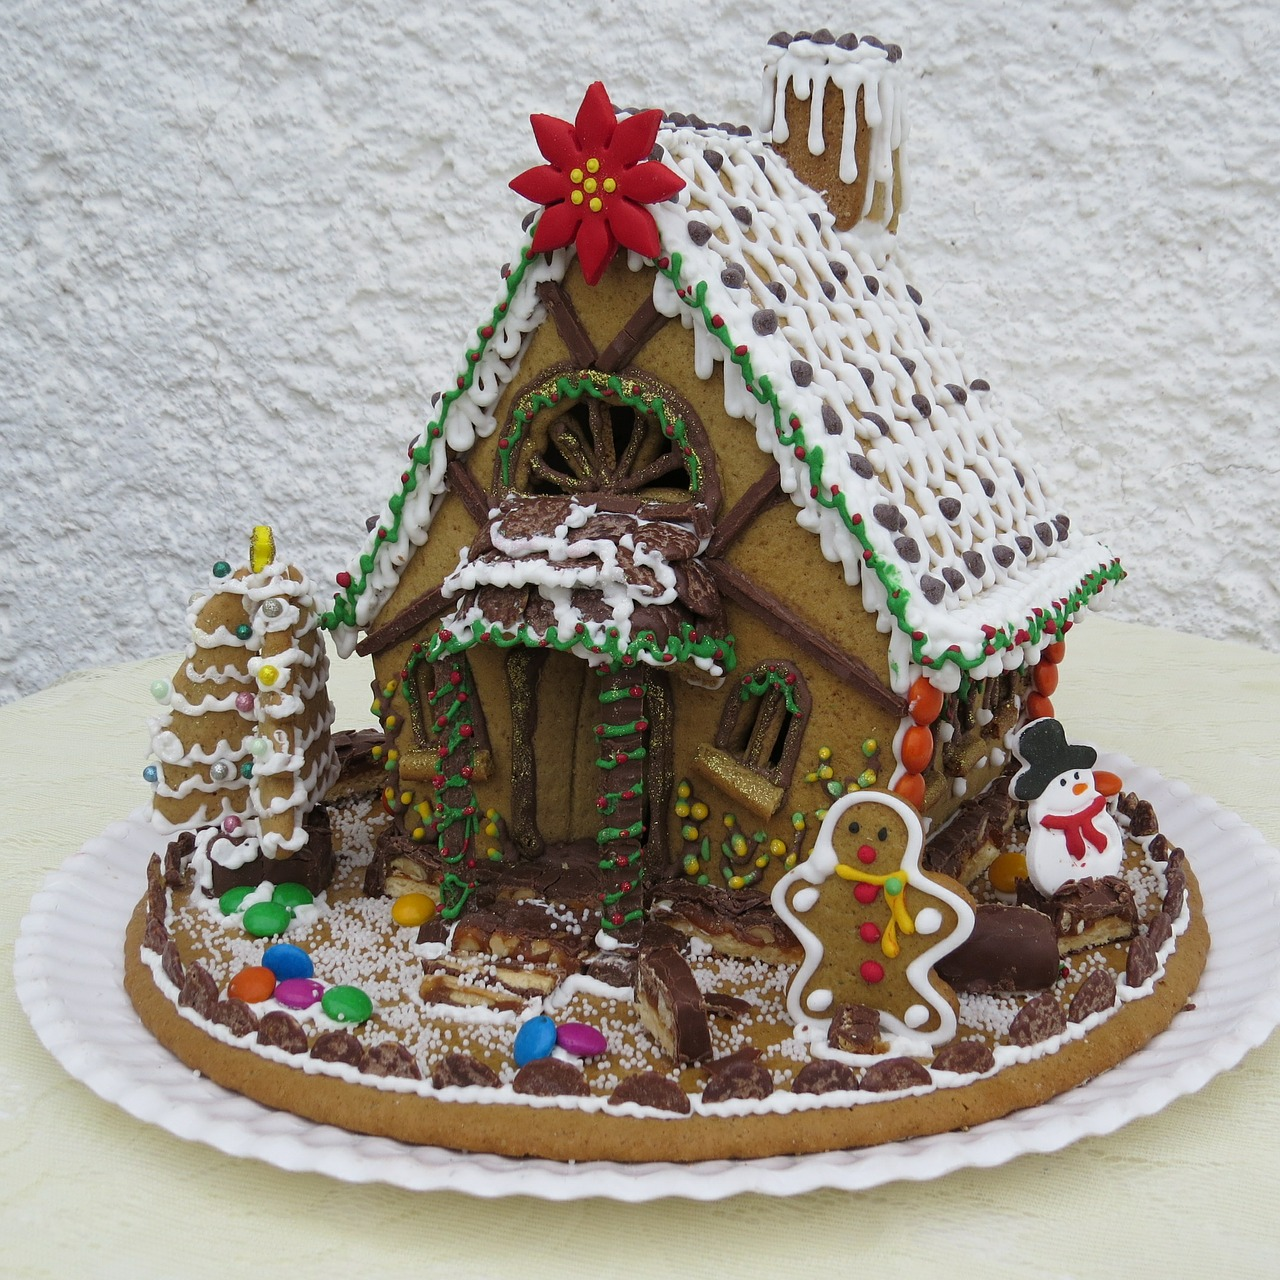 Invigorating Sale Gingerbread House Diy Candy Decorations Gingerbread Houses To Make This Gingerbread House Decorations Gingerbread House Decorations decor Gingerbread House Decorations